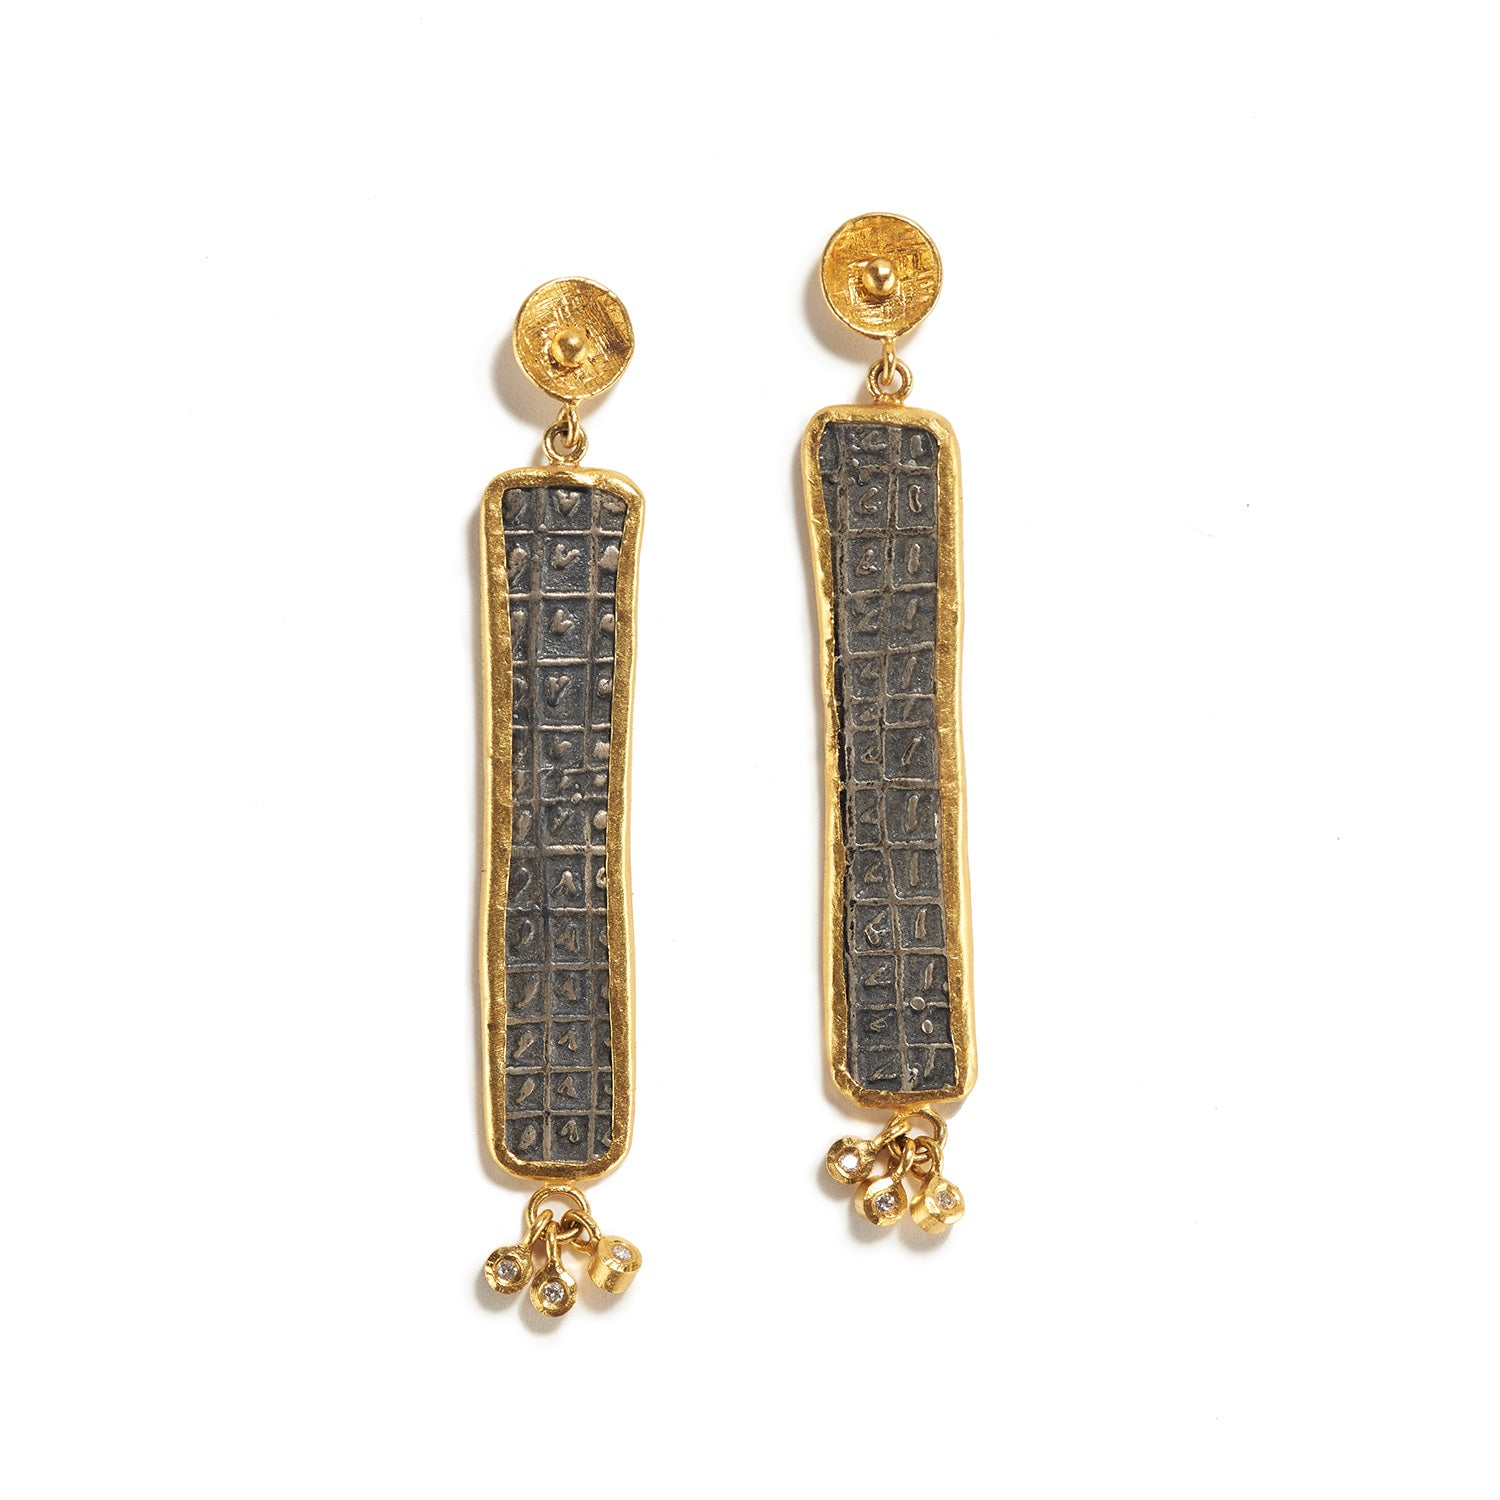 Ancient Turk Tablet Earrings